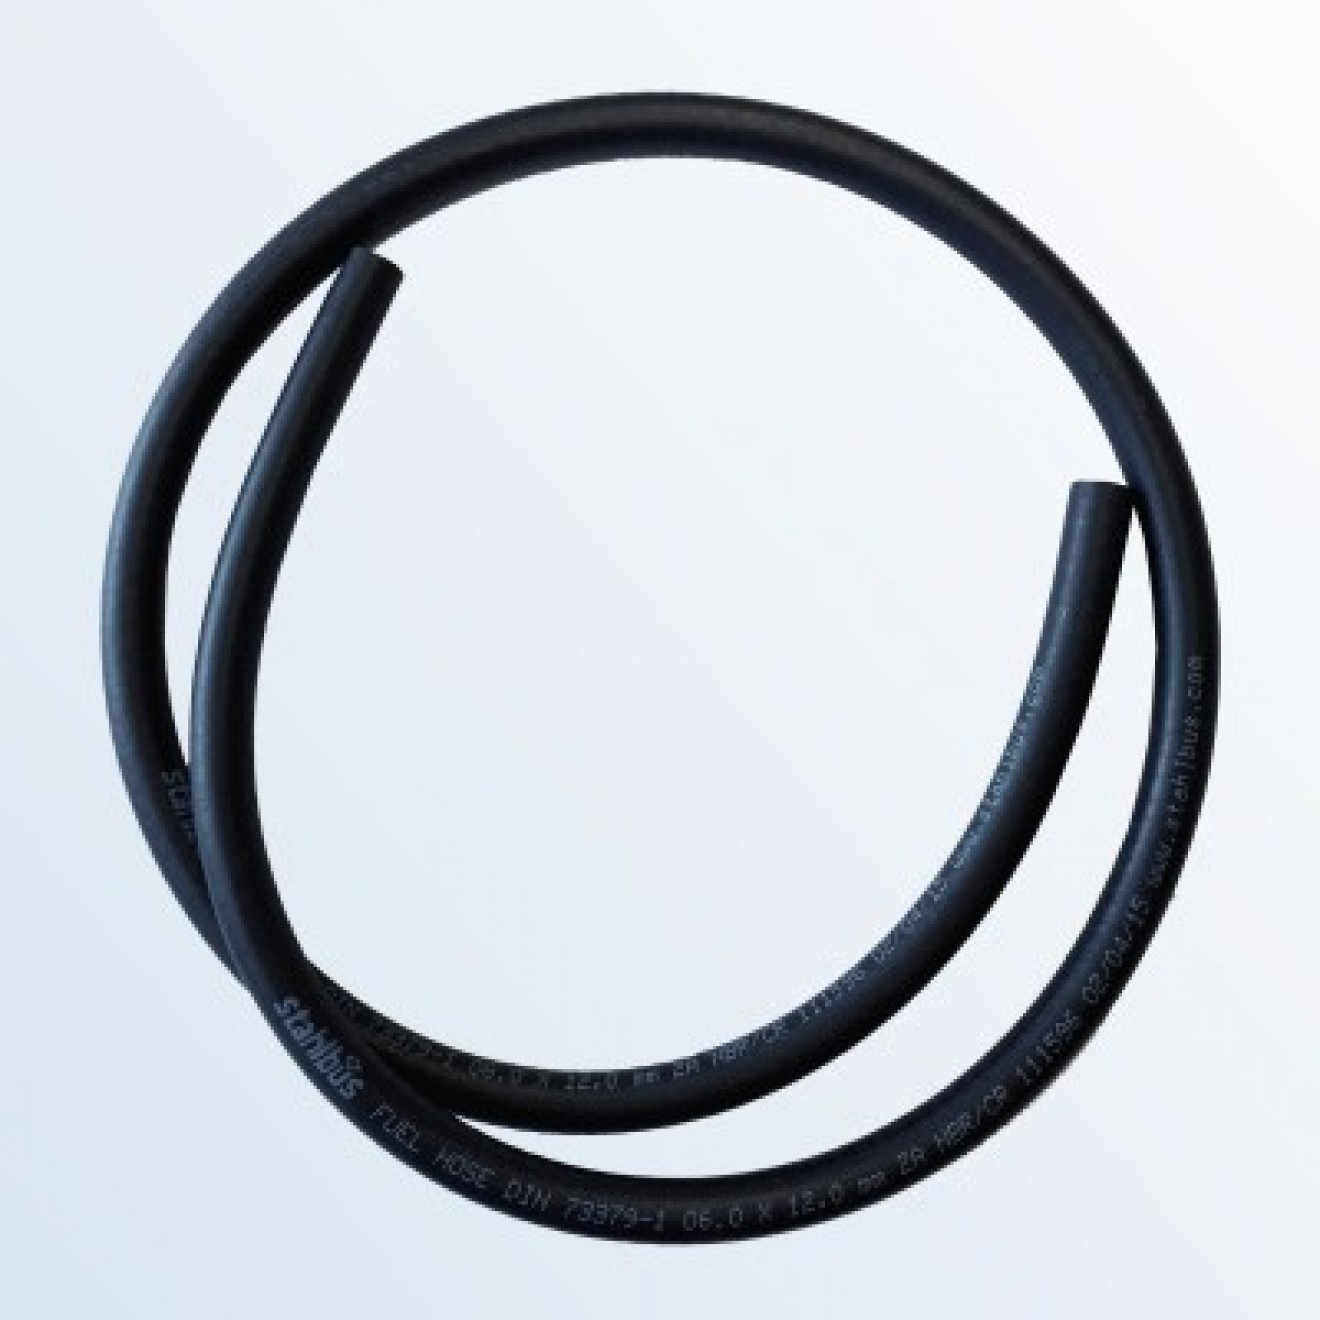 Fuel hose NBR/CR Ø 6 (0.236 inch) x 12mm (0.472 inch), Lenght 1m (39.37 inch)